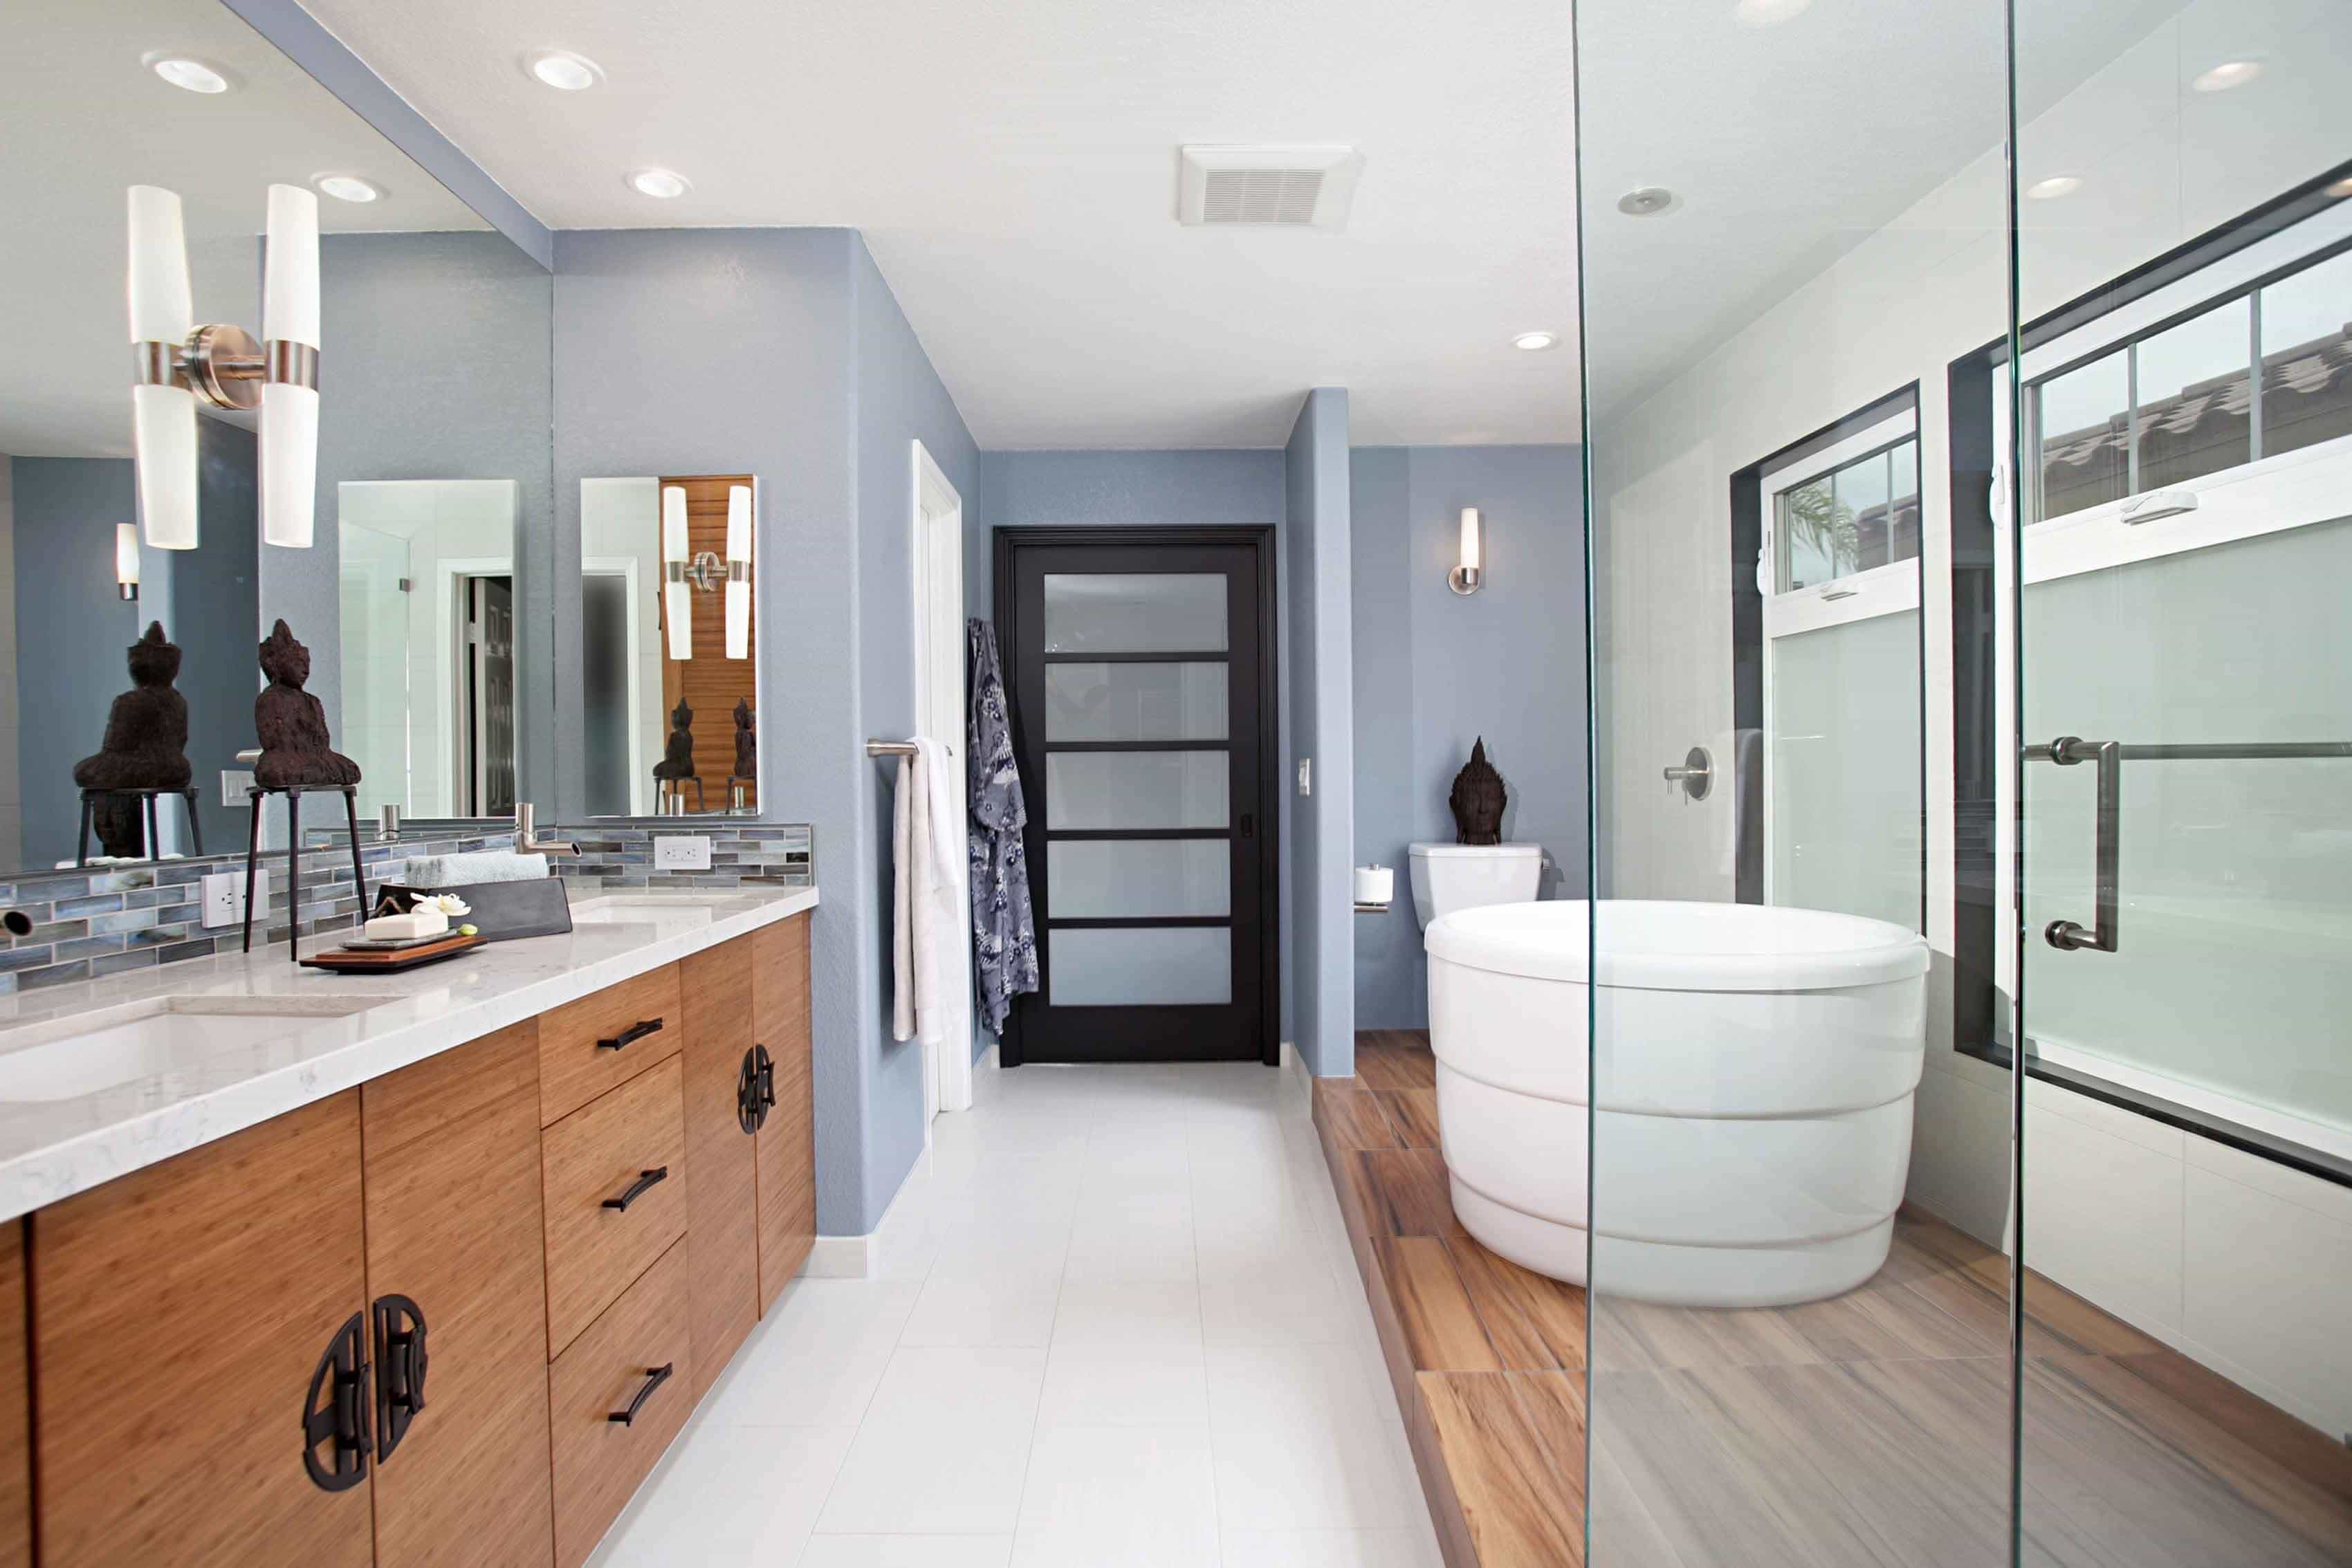 Modern Bathroom Remodel To Long Asian Bathroom With Pastel Blue Walls And Frosted Glass Finishes And White Floating Bathtub (Image 10 of 19)